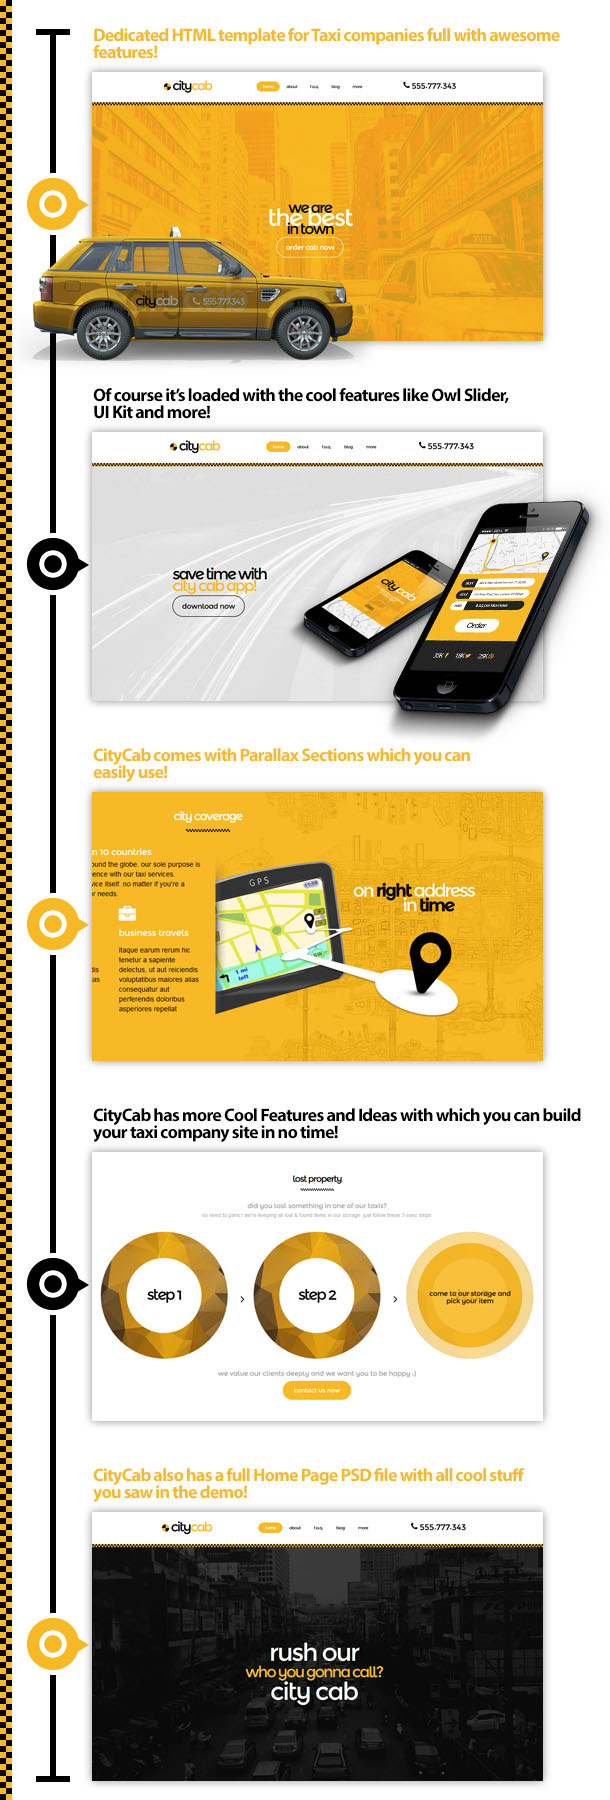 CityCab - Taxi Company Responsive HTML Template - 1